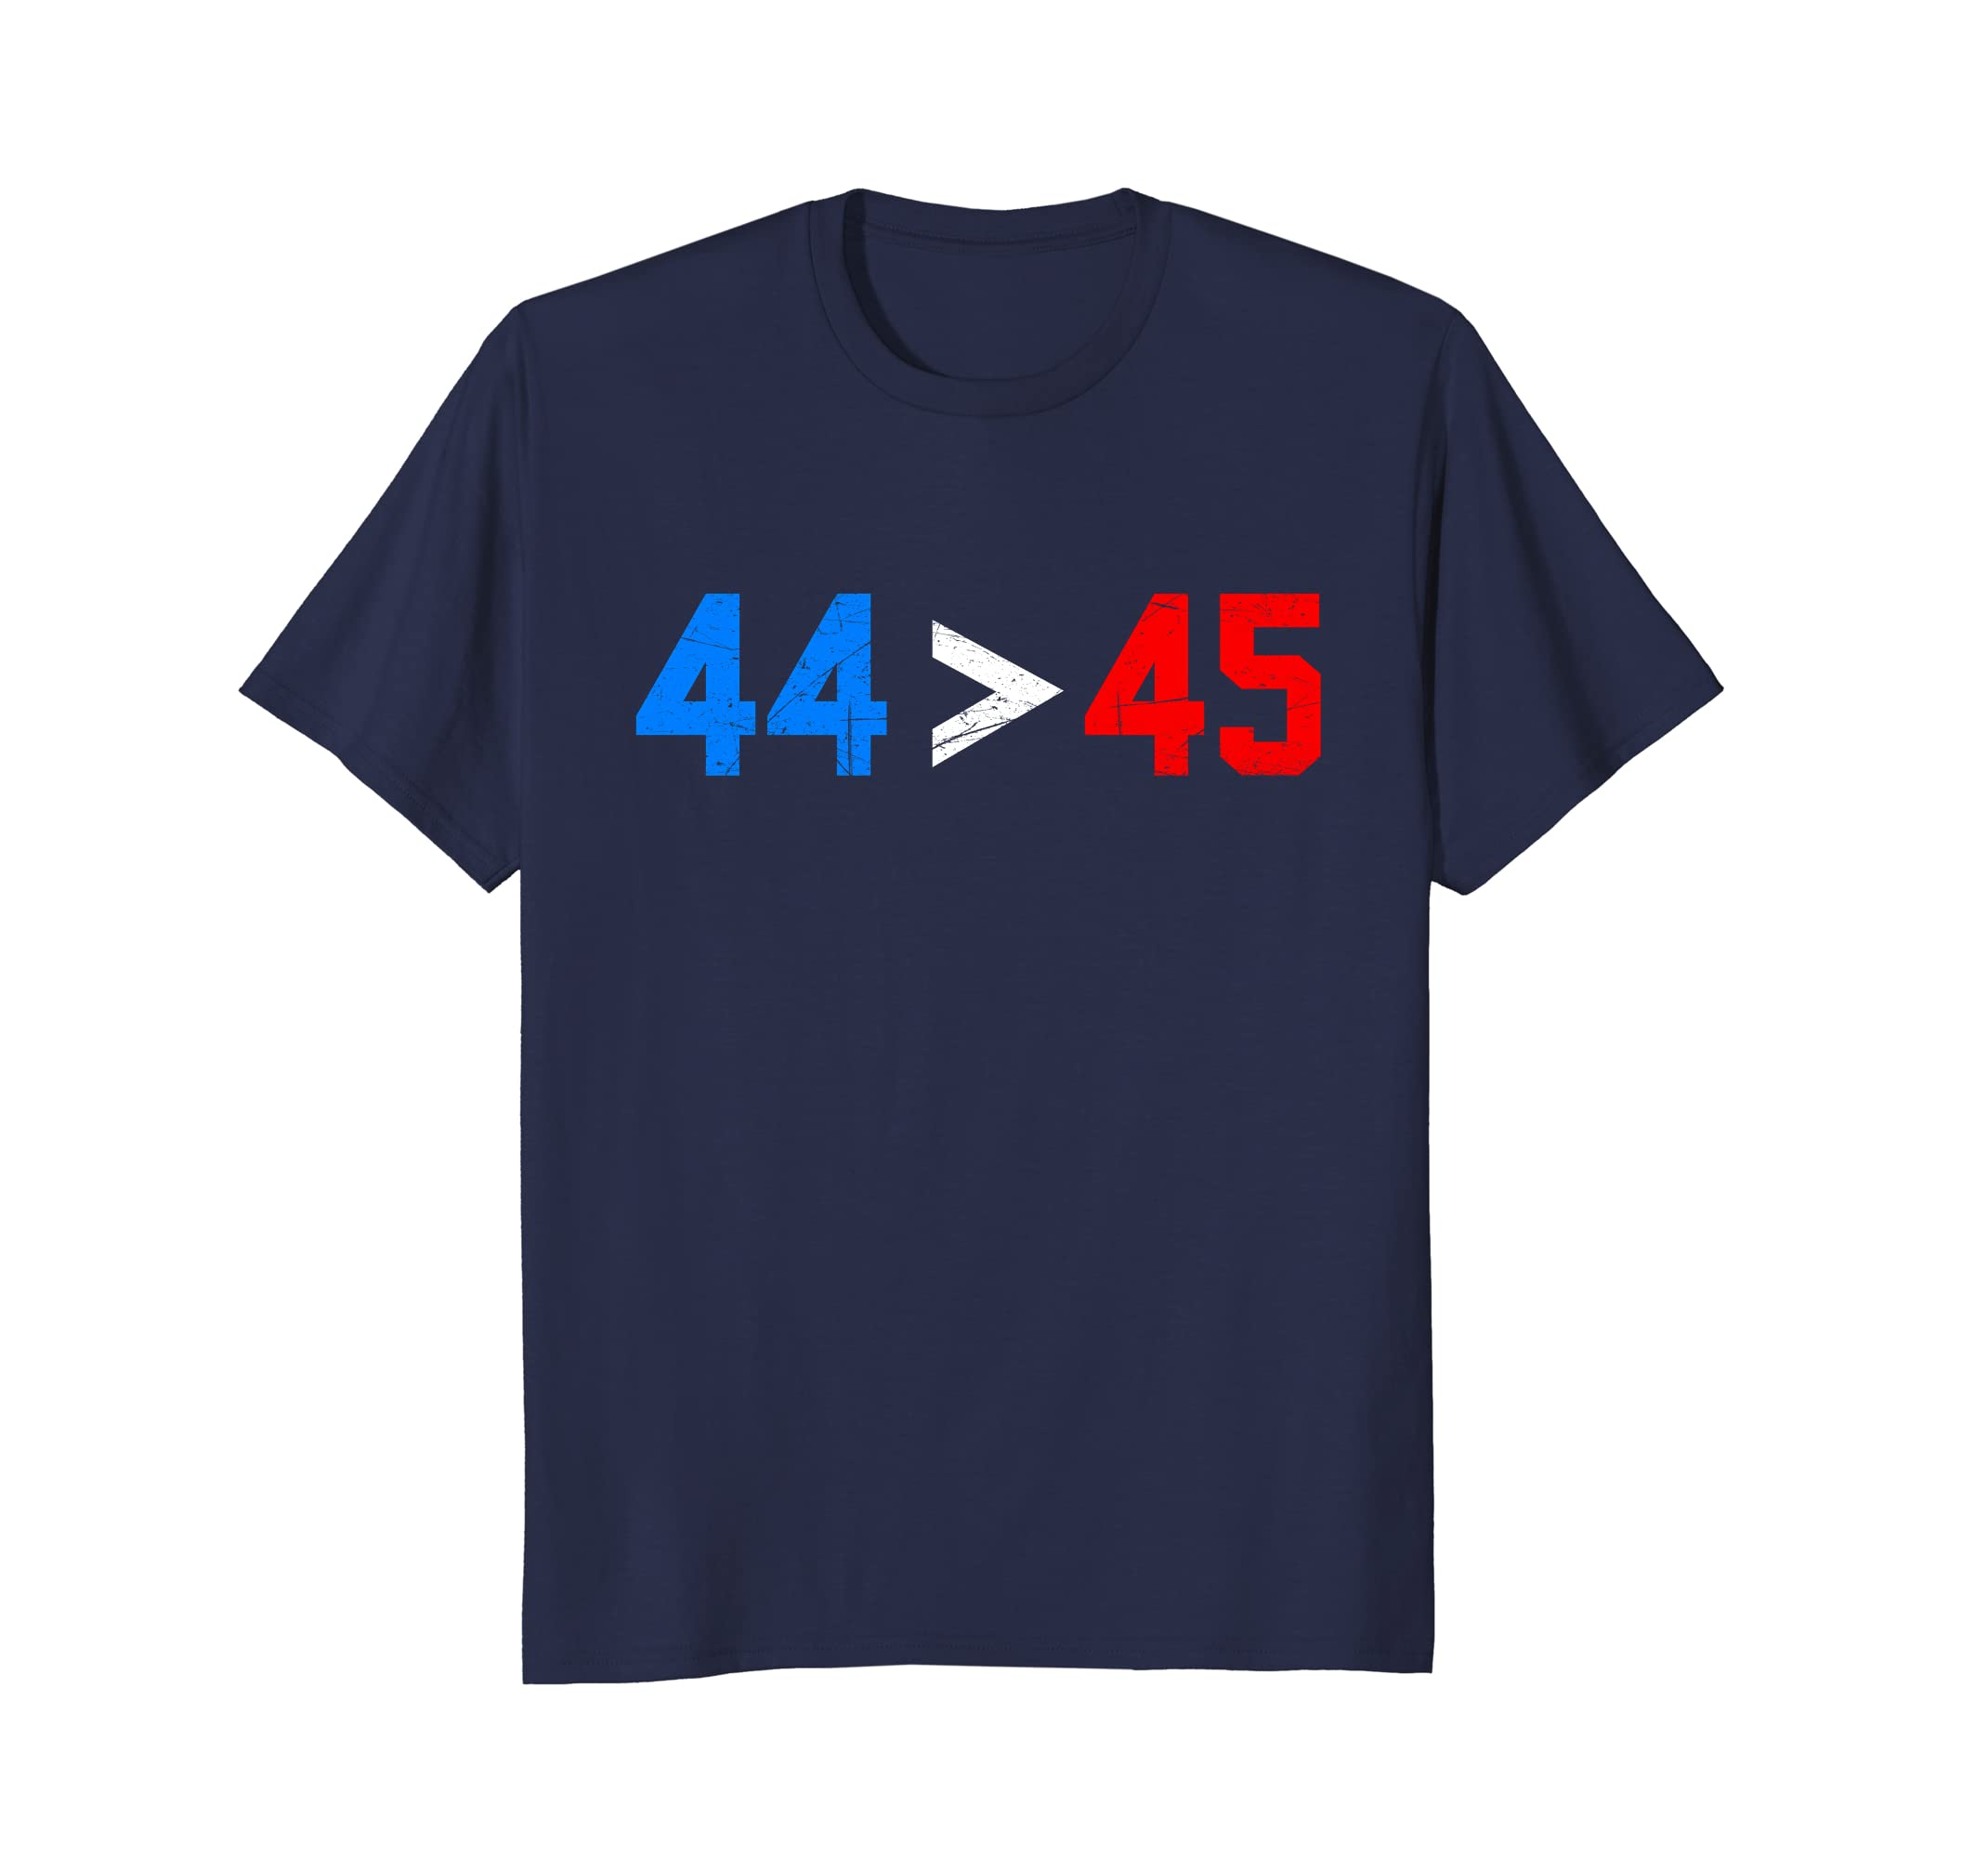 44 > 45, President Obama 44 Greater Than Trump 45 T-Shirt-TH